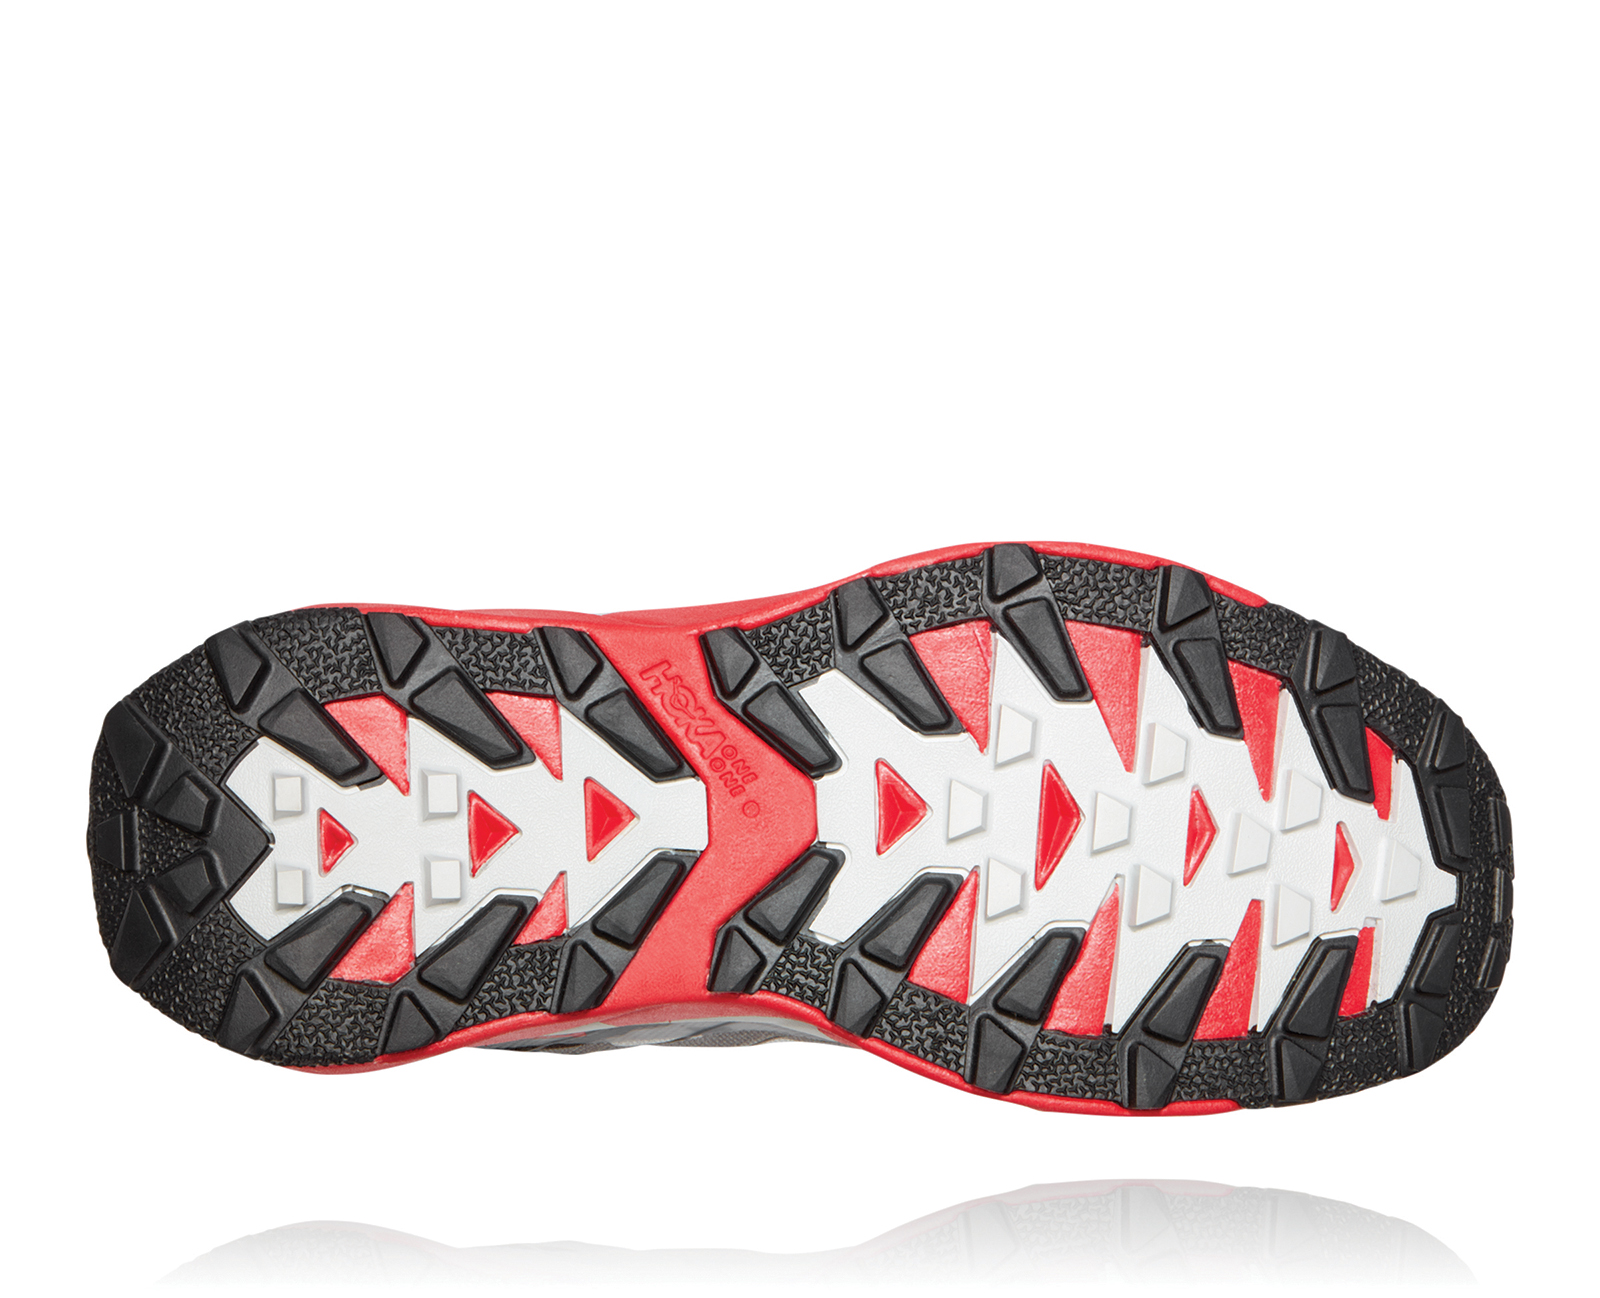 The Torrent x XTERRA is available in two colours